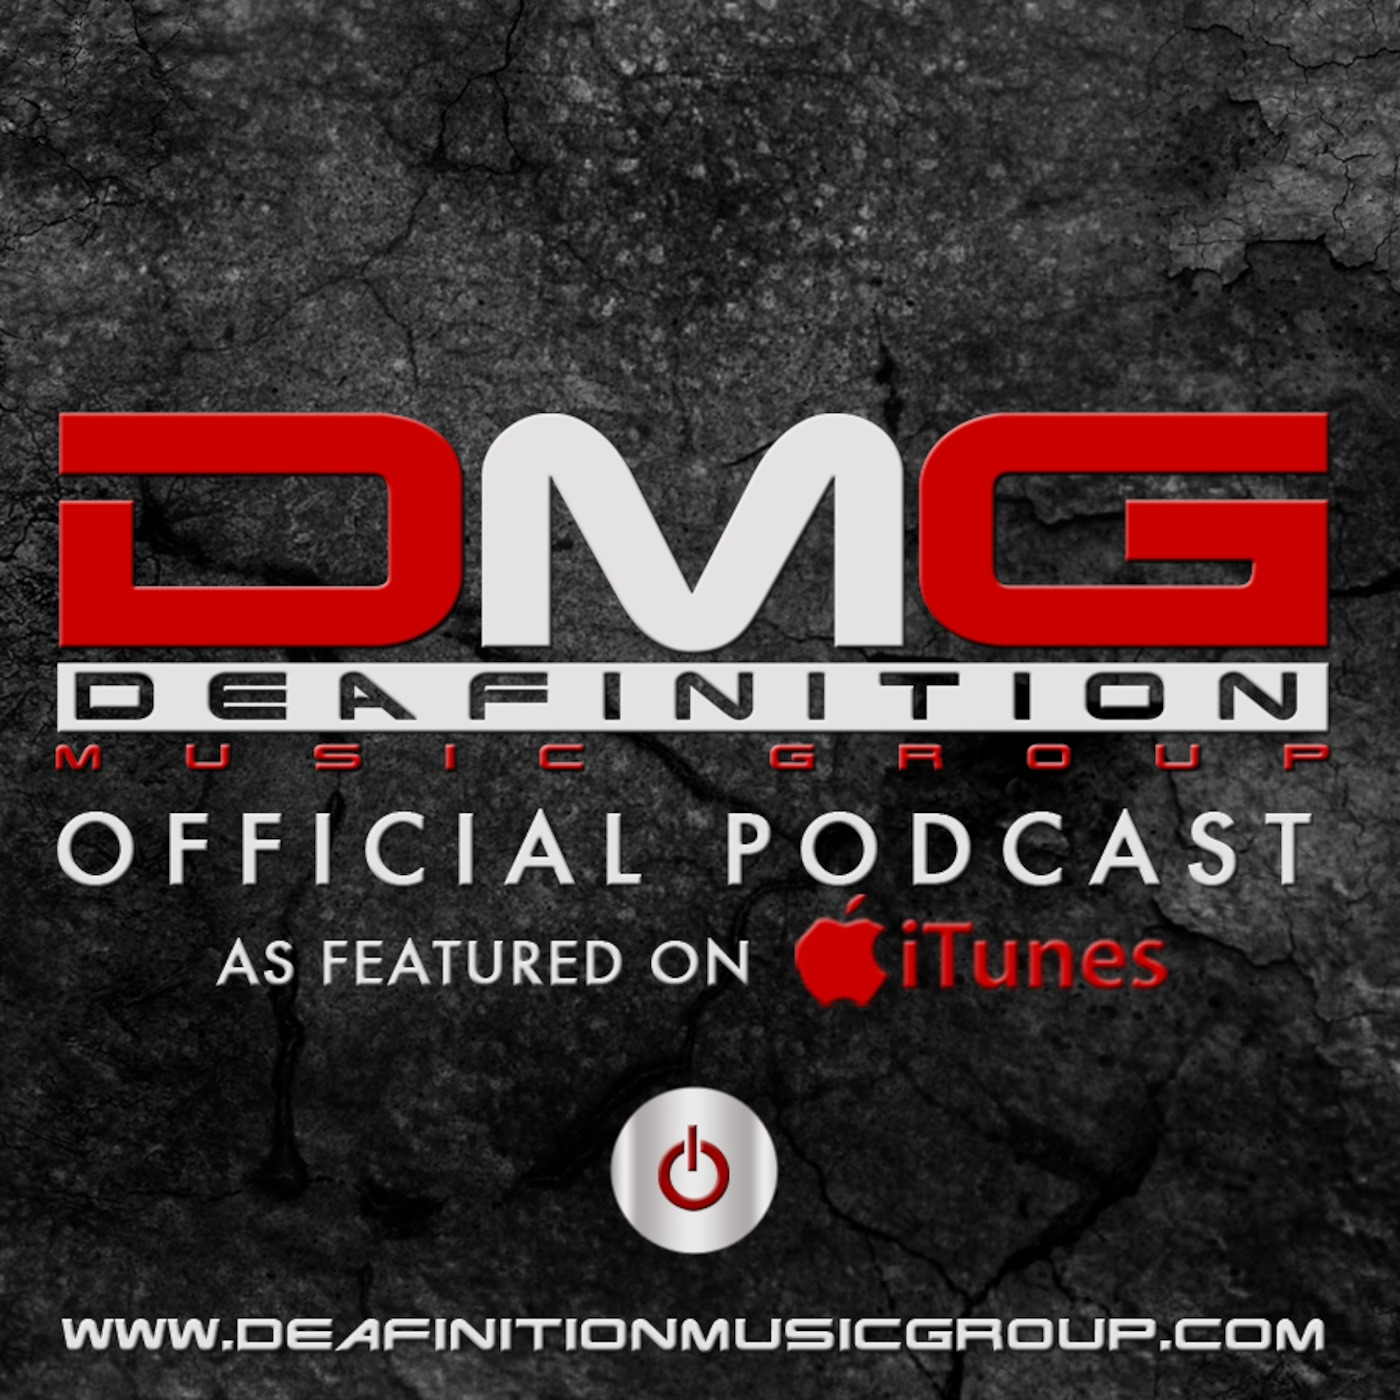 Deafinition Music Group (DMG) Podcast